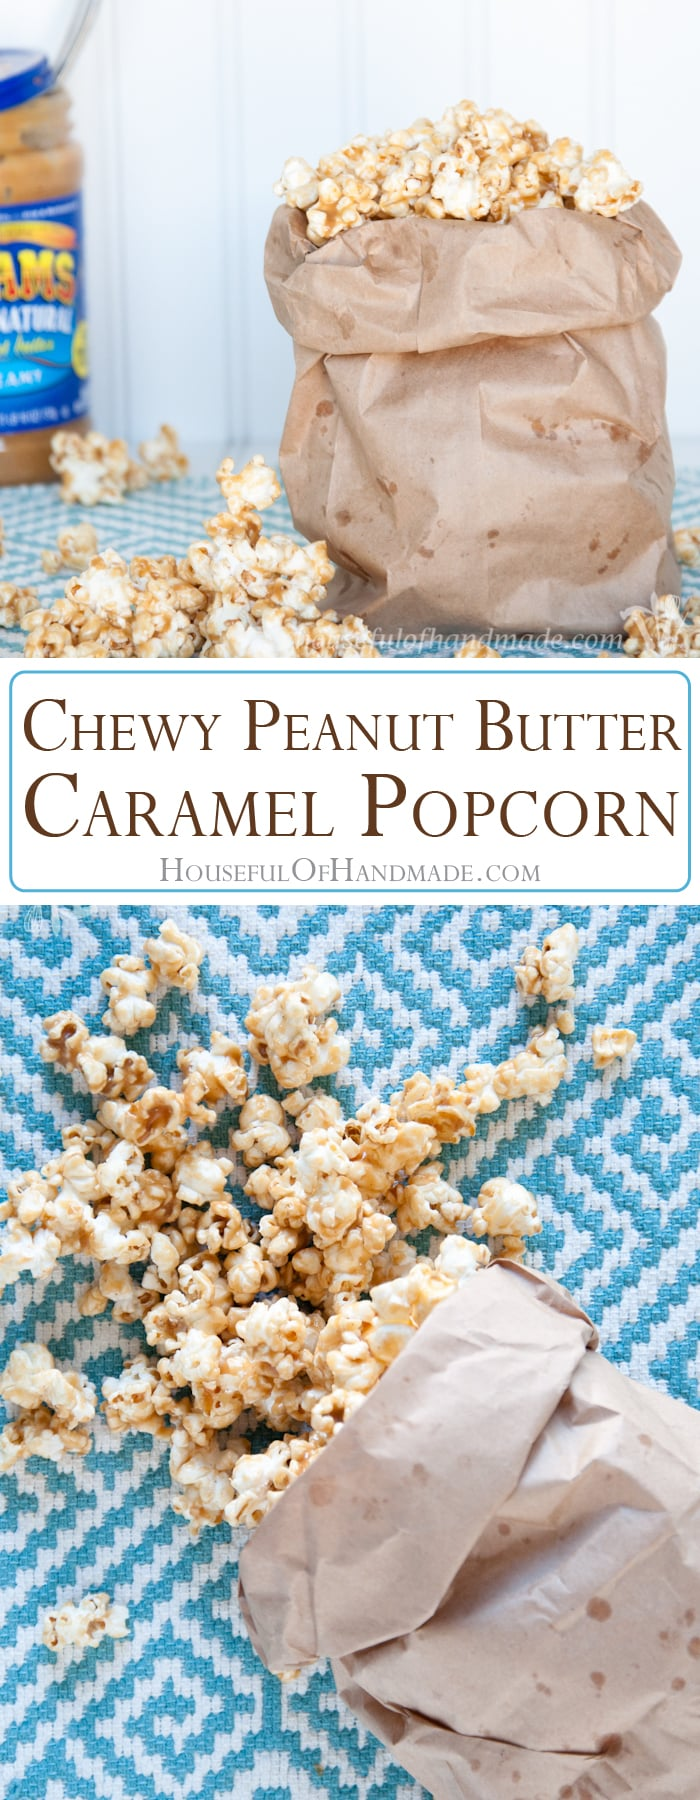 This is the best caramel popcorn ever! I love the sweet, nutty, and slightly salty flavor of this chewy peanut butter caramel popcorn. Day 1 of 14 days of popcorn.   Housefulofhandmade.com